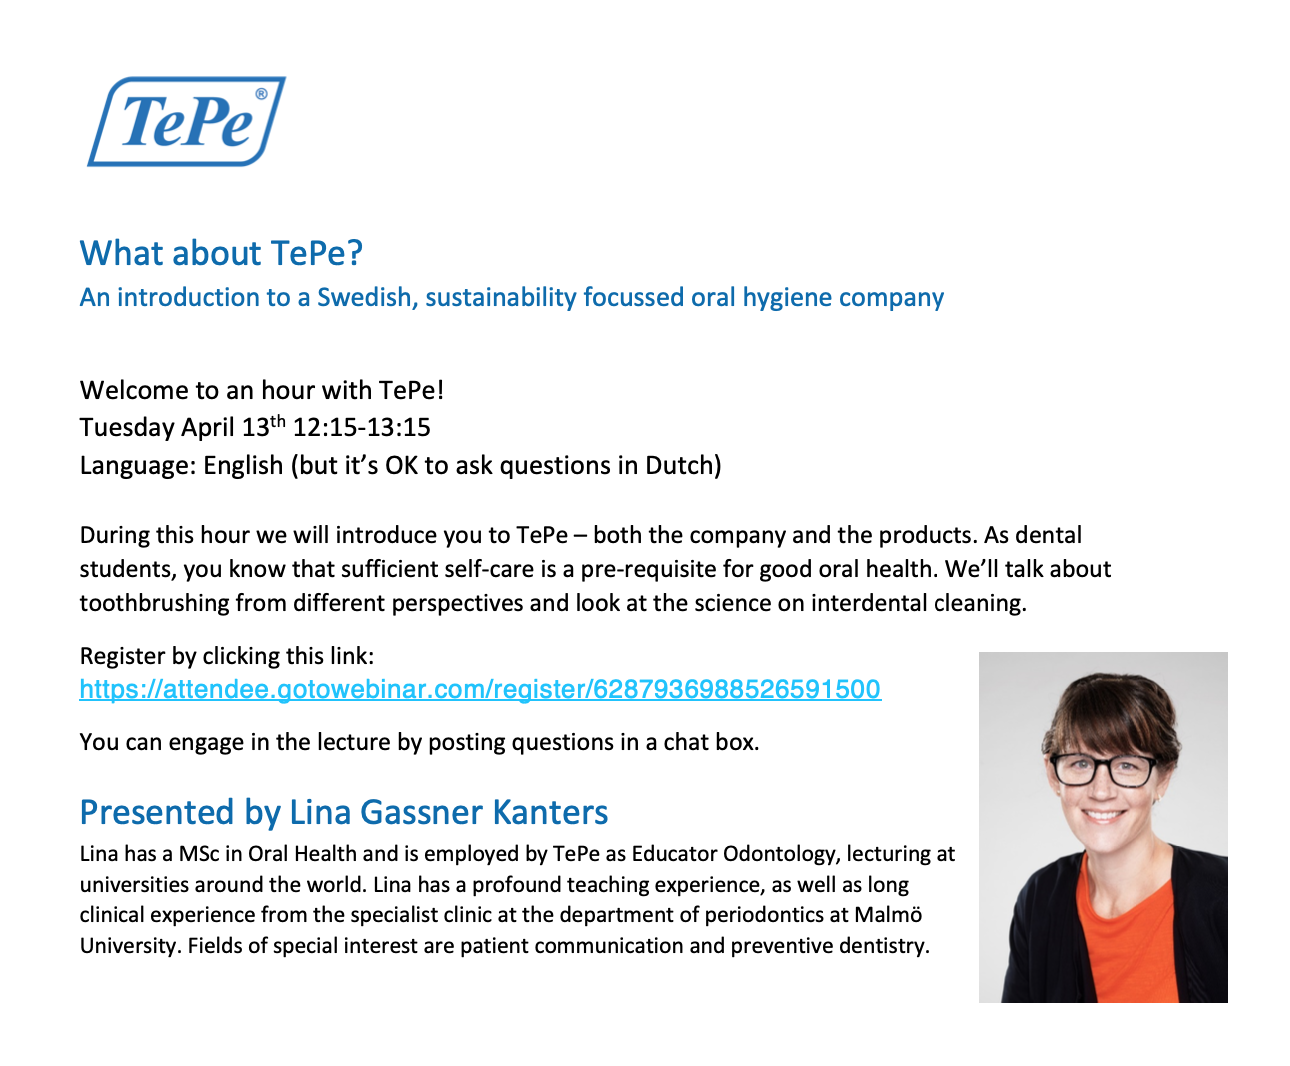 Webinar - What about TePe?